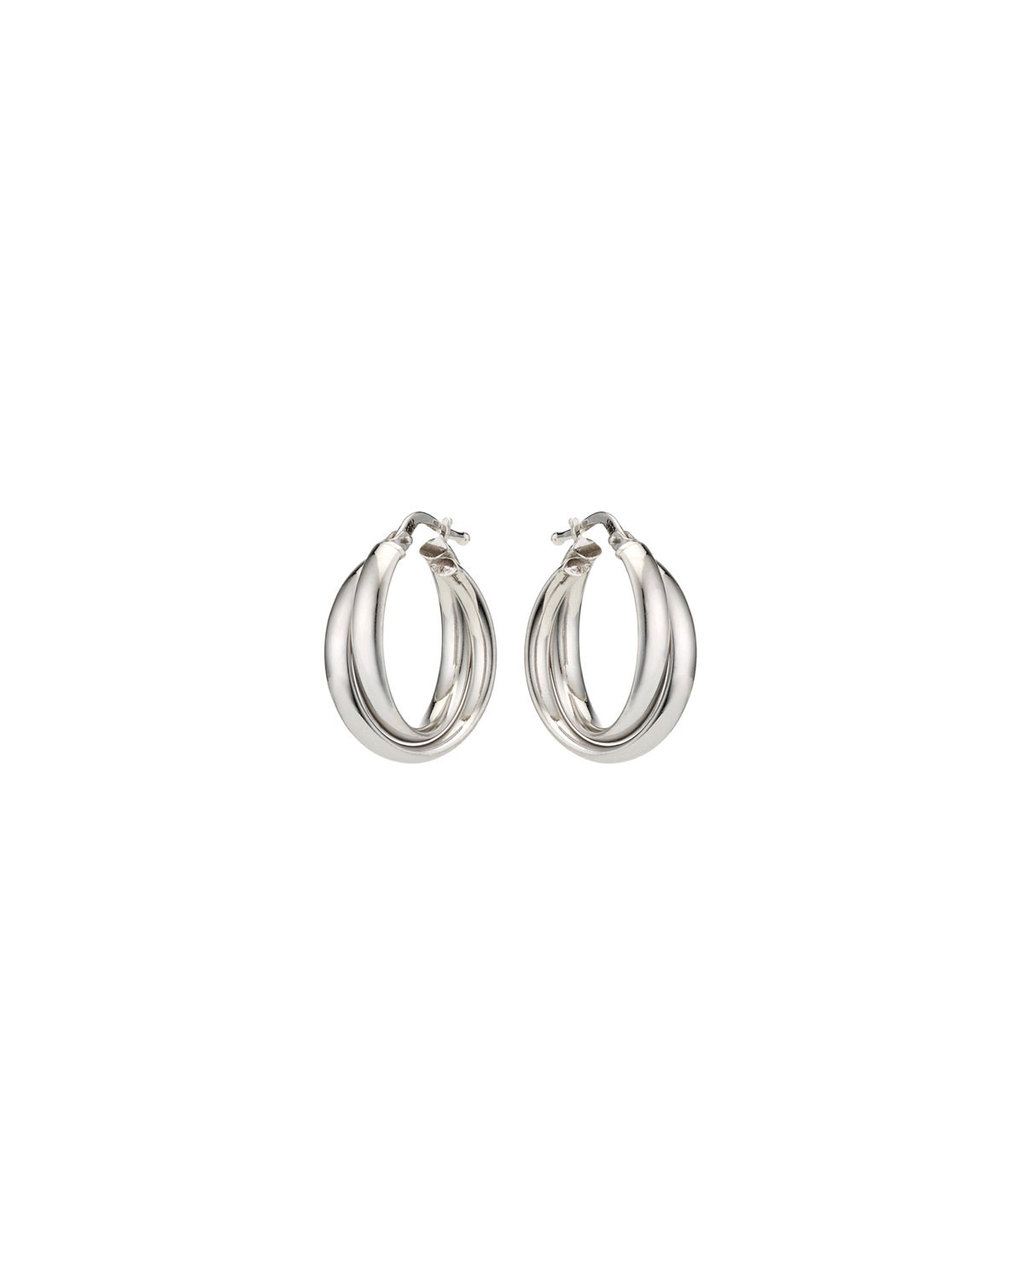 Sterling Silver Double Wrap Hoops - predominant colour: silver; occasions: evening; style: hoop; length: long; size: standard; material: chain/metal; fastening: pierced; finish: metallic; season: s/s 2016; wardrobe: event